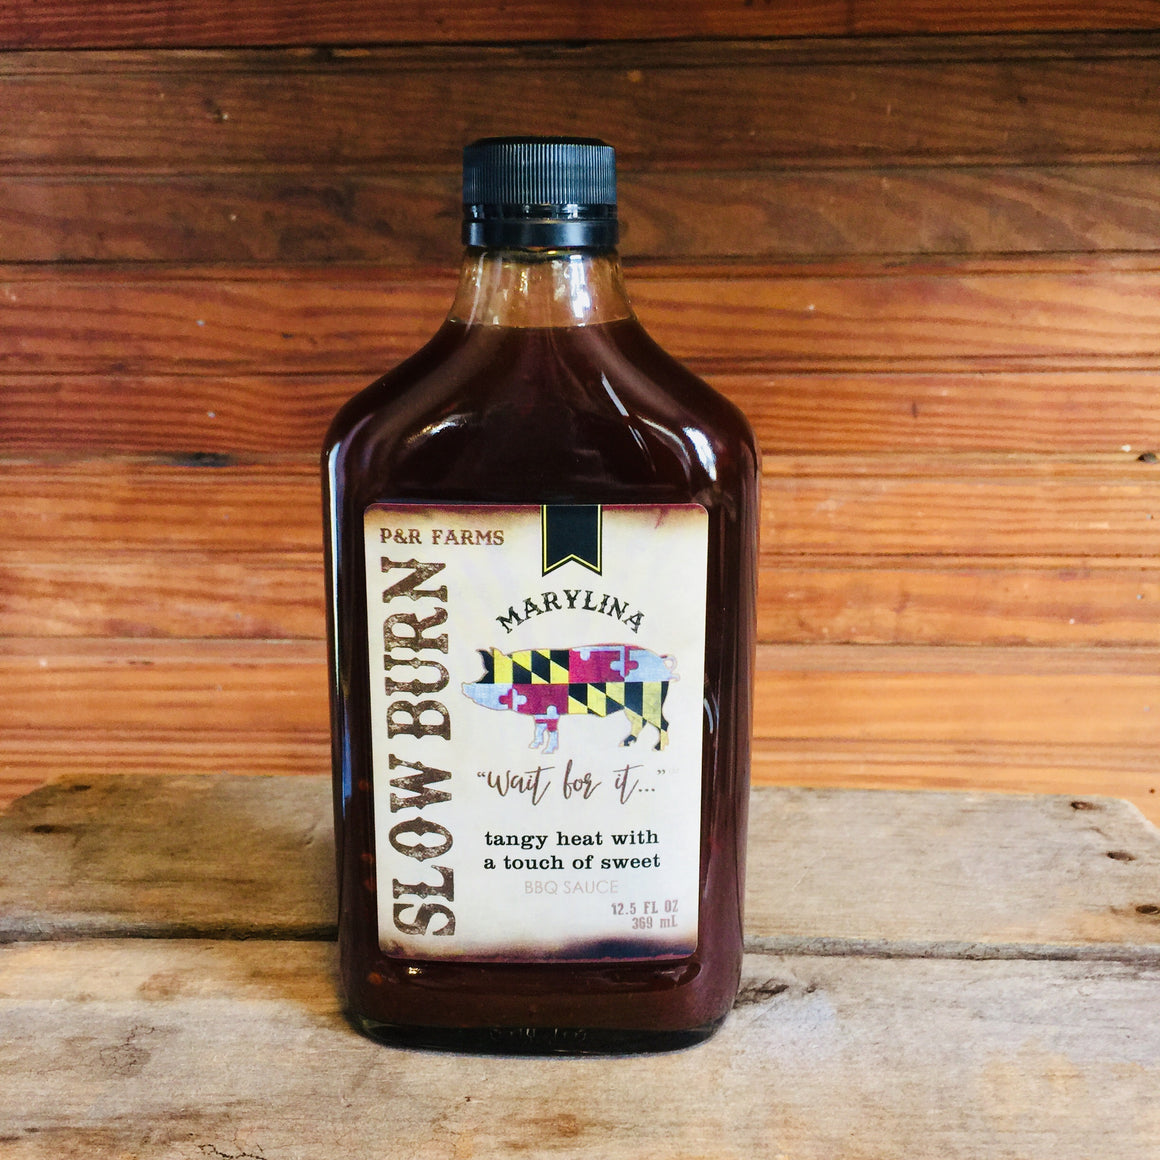 P&R Farms Slow Burn BBQ Sauce